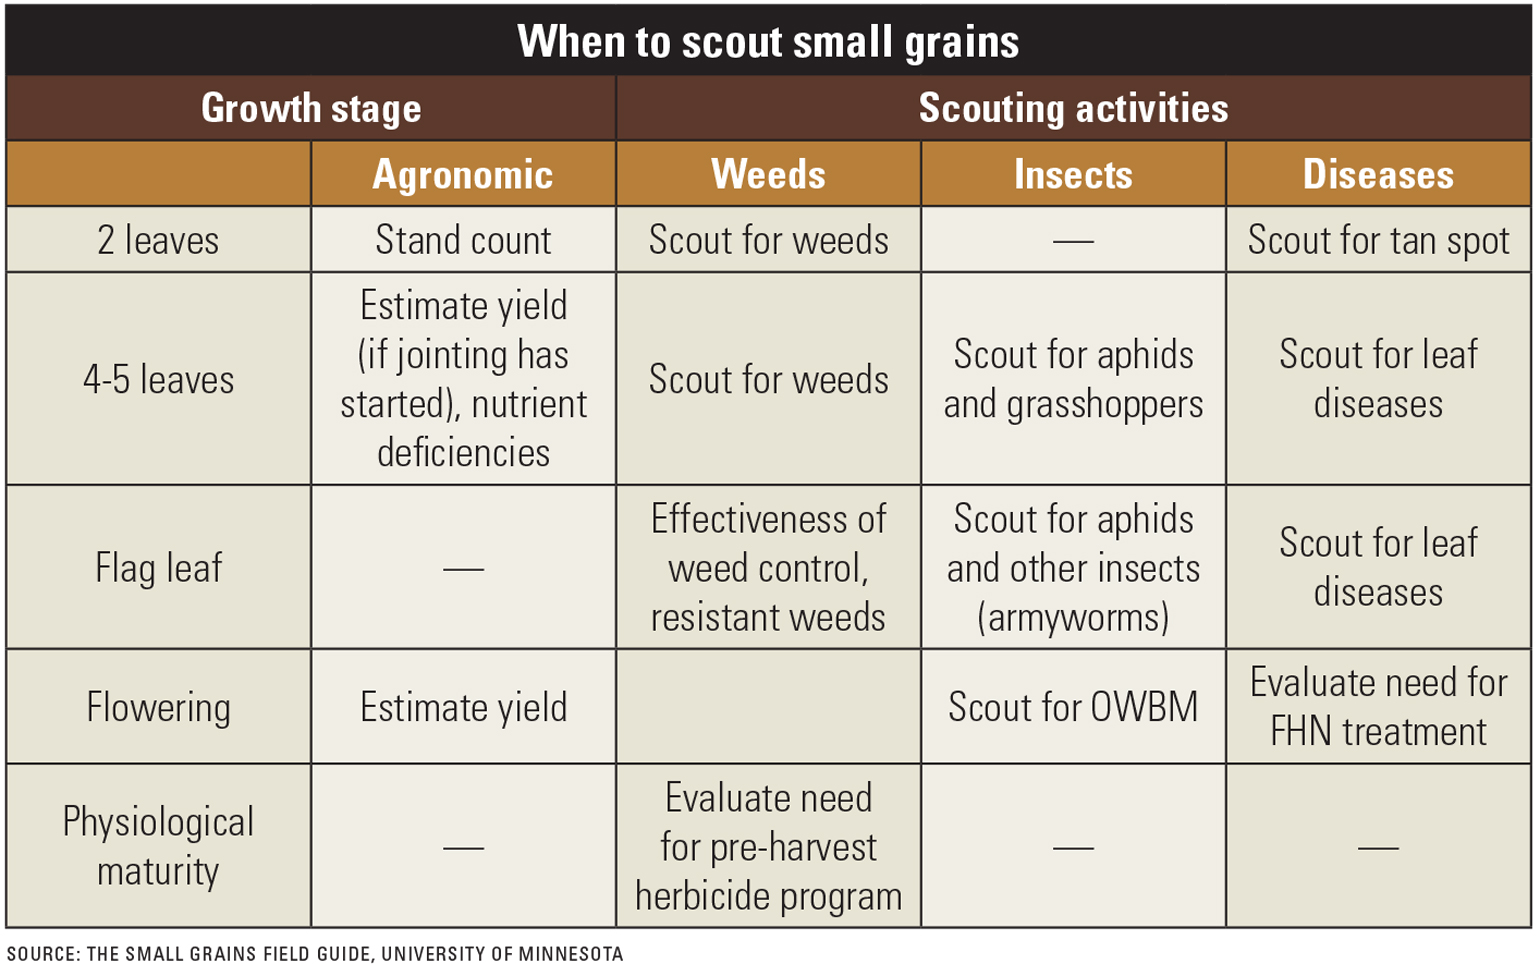 when to scout small grains chart